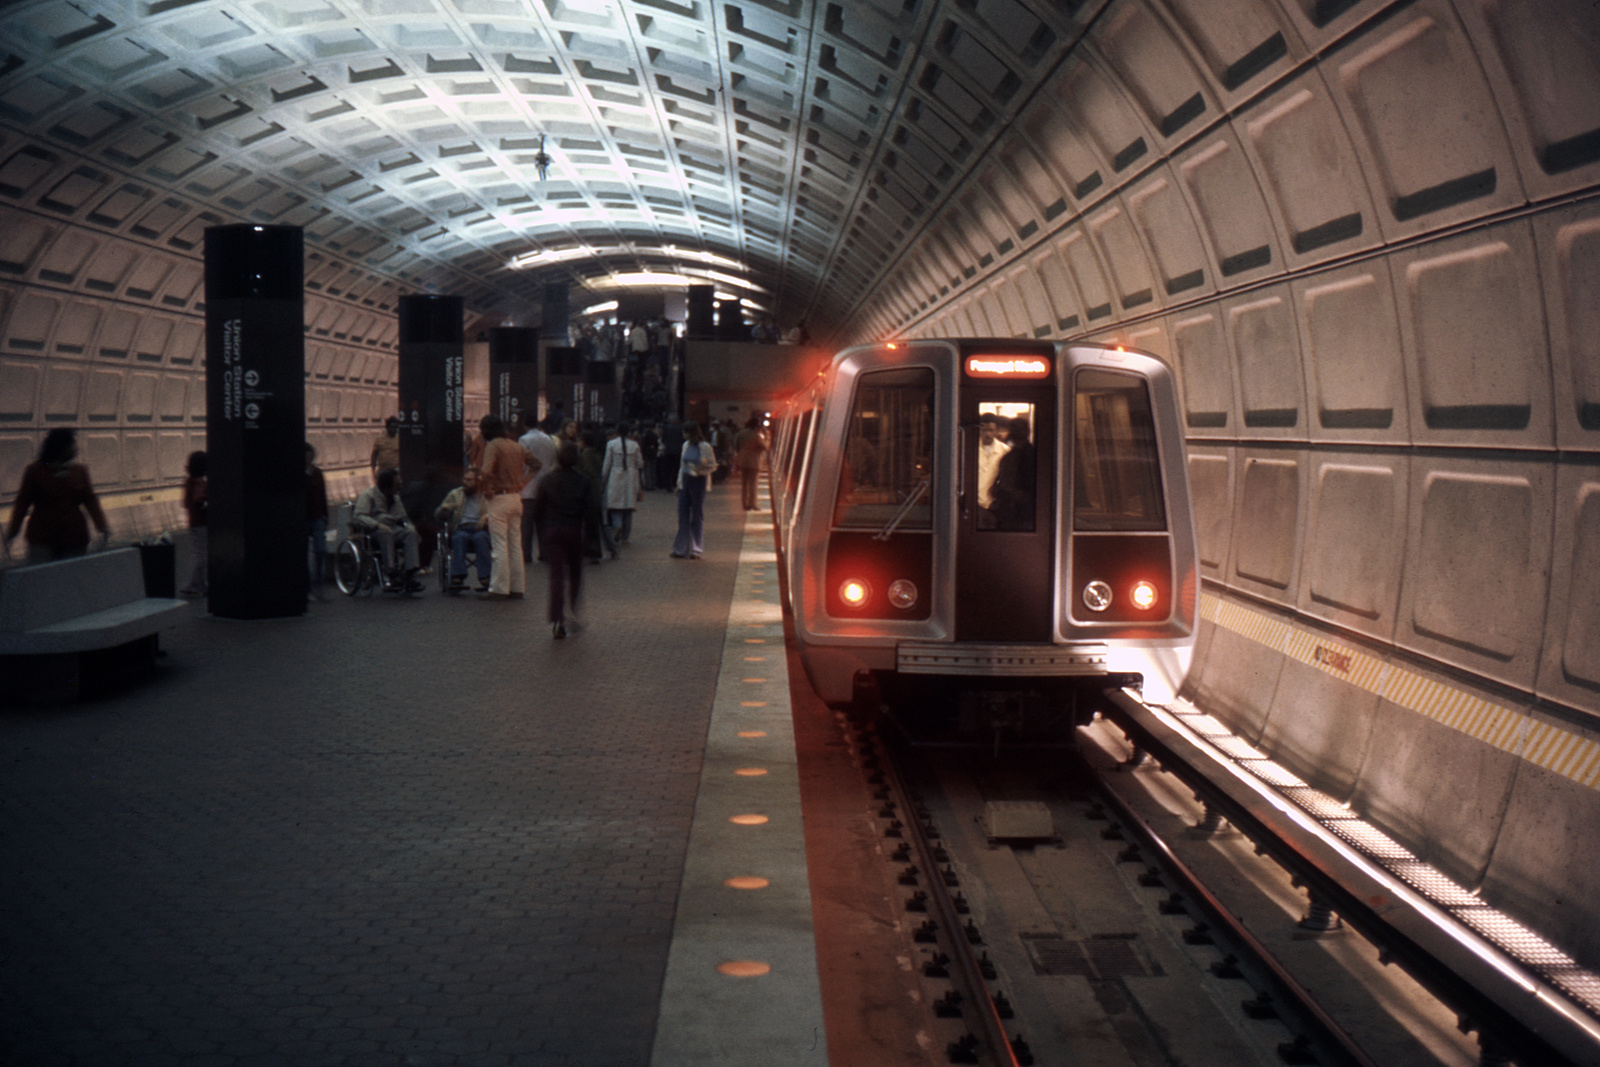 (346k, 1044x708)<br><b>Country:</b> United States<br><b>City:</b> Washington, D.C.<br><b>System:</b> Washington Metro (WMATA)<br><b>Line:</b> WMATA Red Line<br><b>Location:</b> Union Station <br><b>Collection of:</b> David Pirmann<br><b>Date:</b> 4/1976<br><b>Viewed (this week/total):</b> 3 / 6783